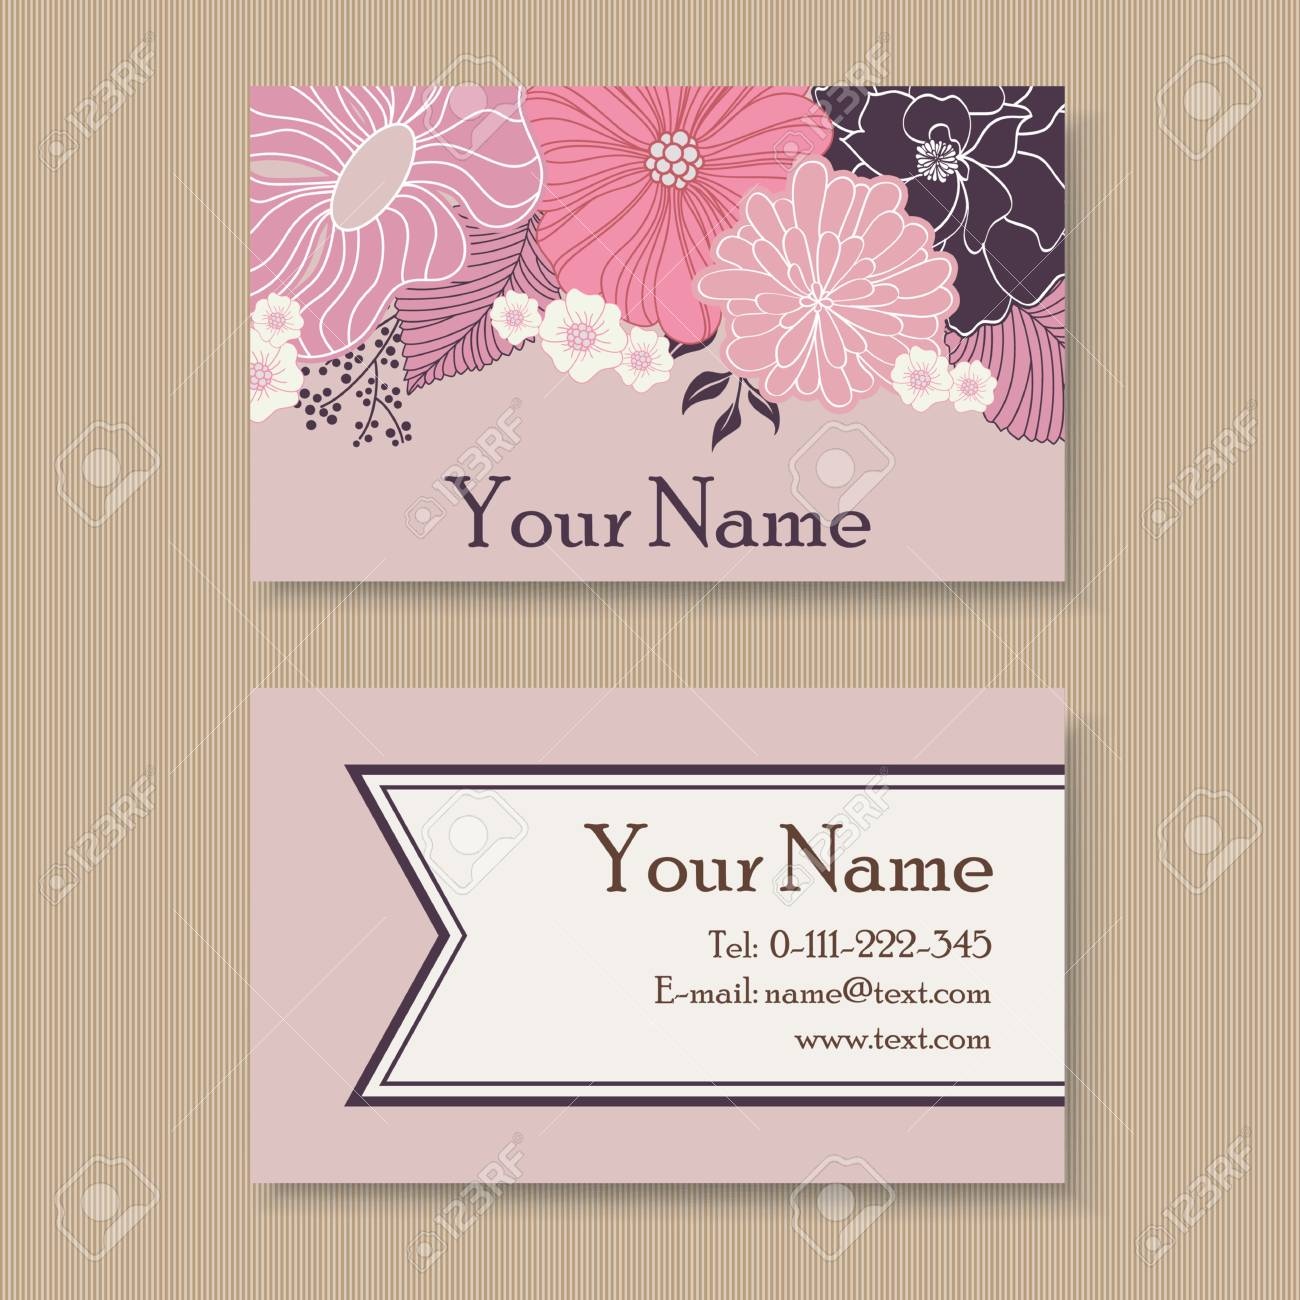 Beautiful floral business card template royalty free cliparts beautiful floral business card template stock vector 31236641 cheaphphosting Gallery